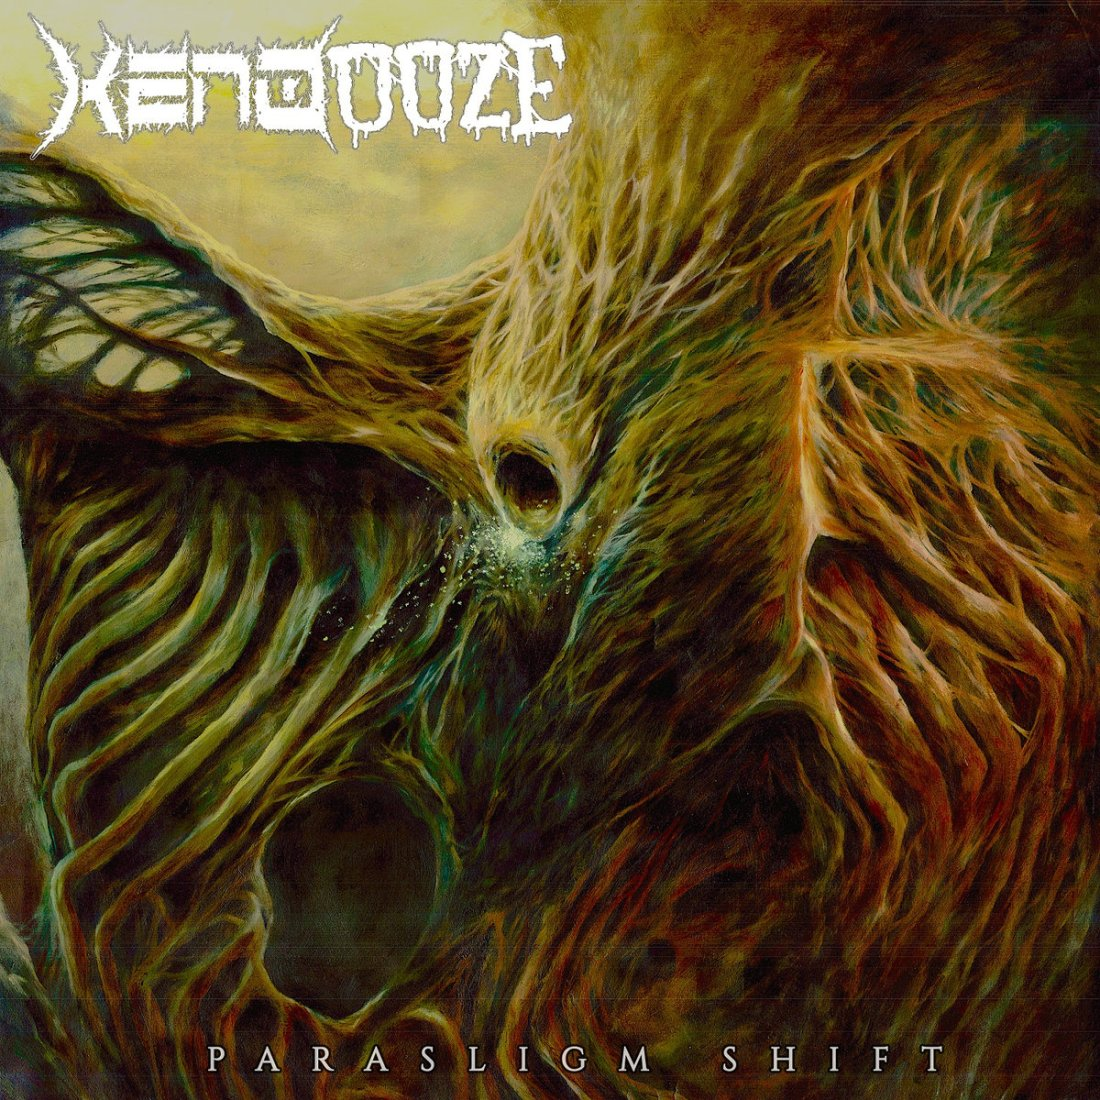 Xeno Ooze - Parasligm Shift